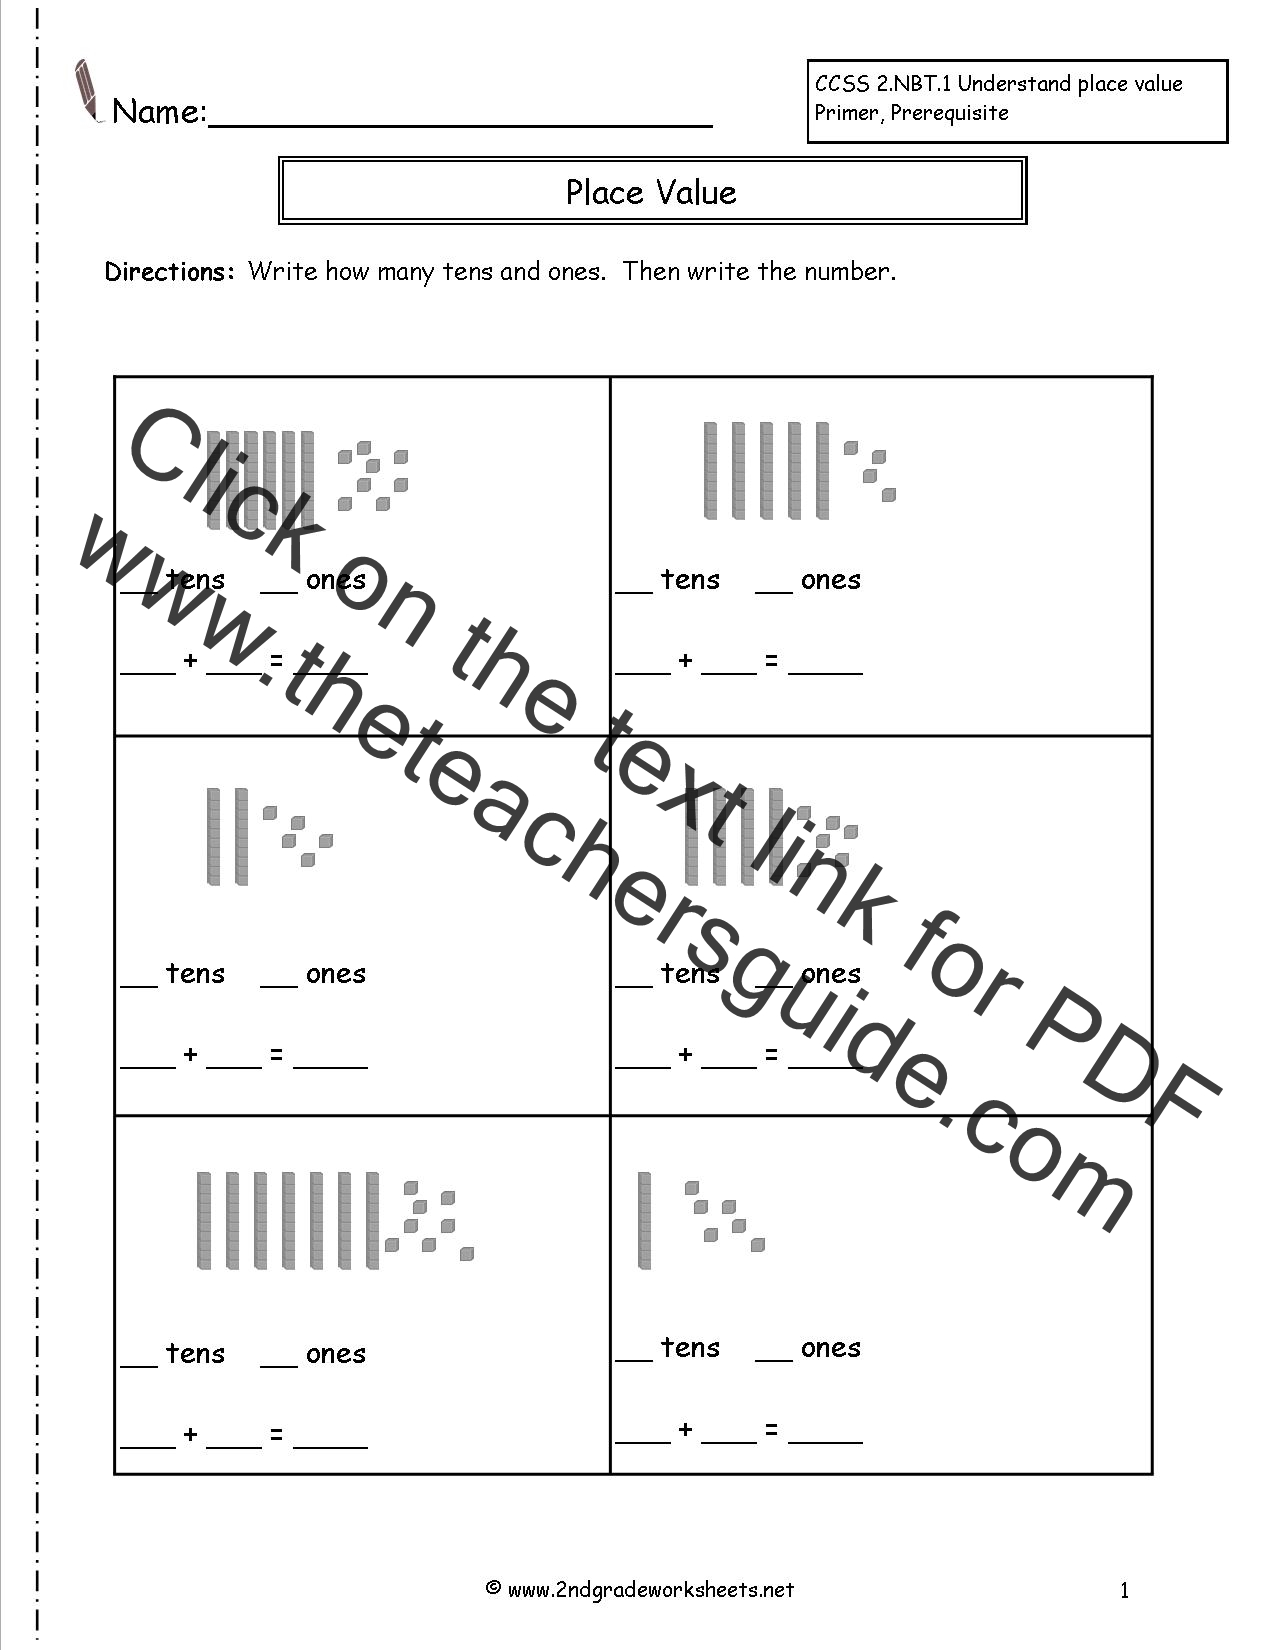 Free Printable Place Value Worksheets That Are Remarkable